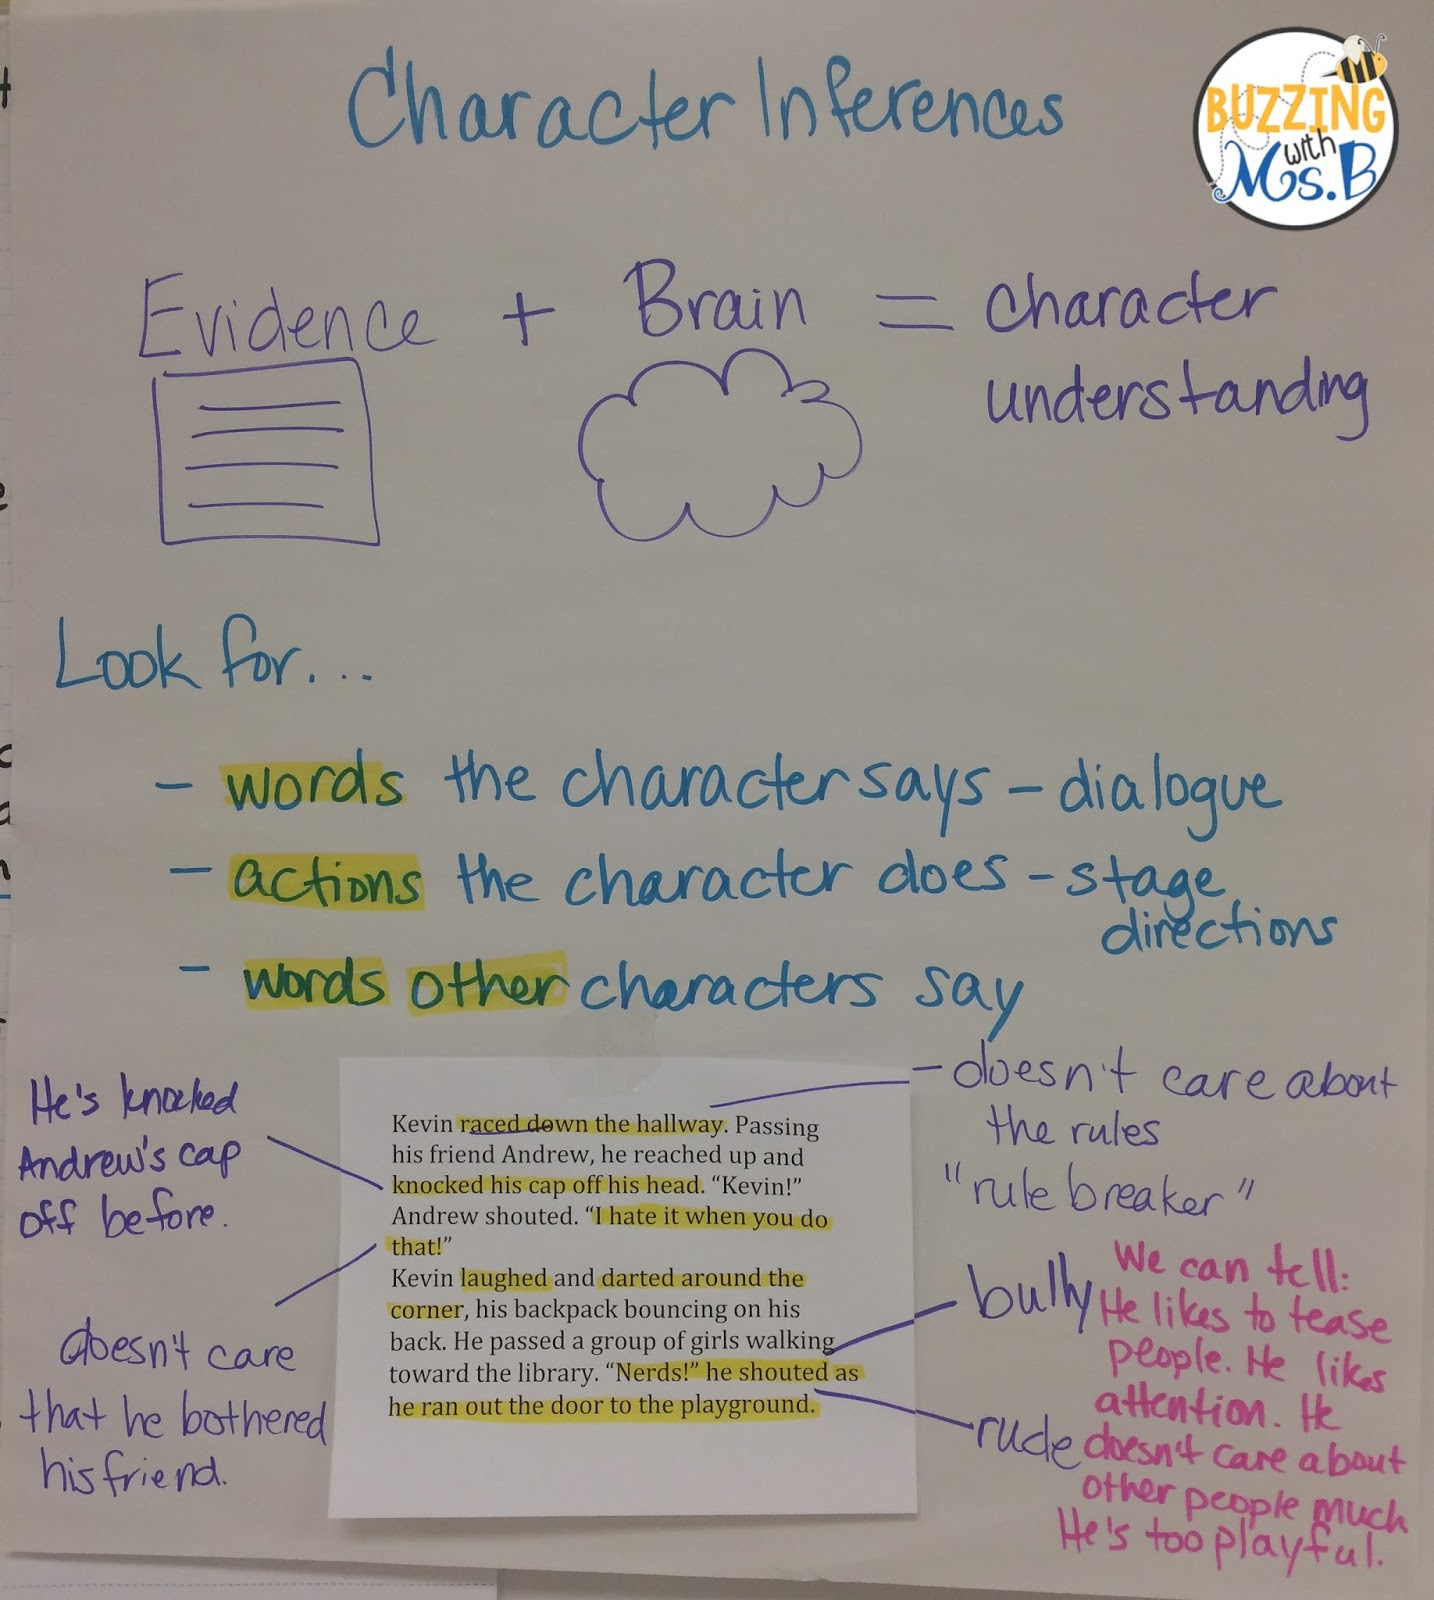 Buzzing With Ms B Making Inferences About Character Traits